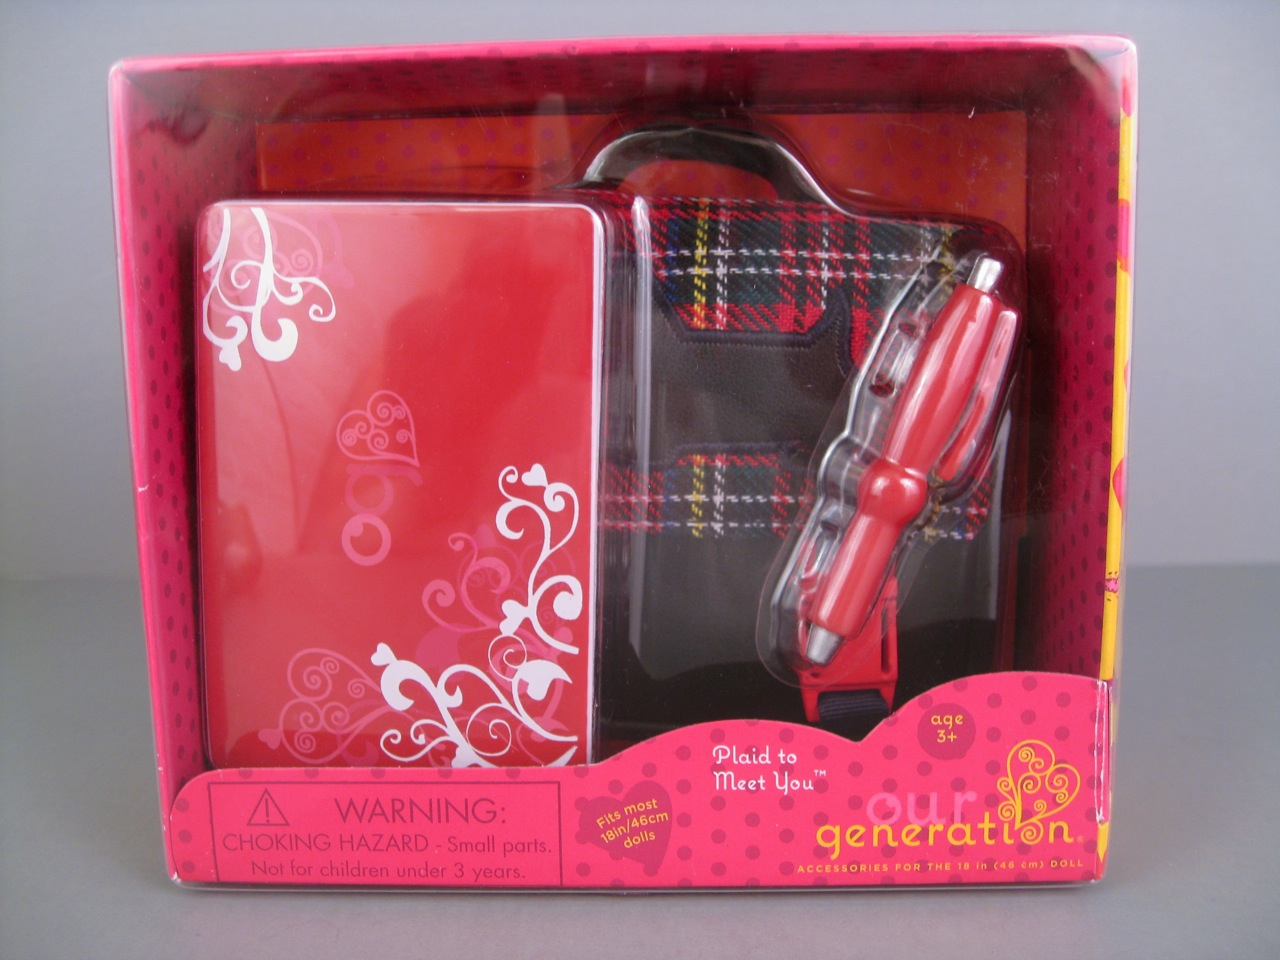 Our Generation Quot Plaid To Meet You Quot Accessory Set The Toy